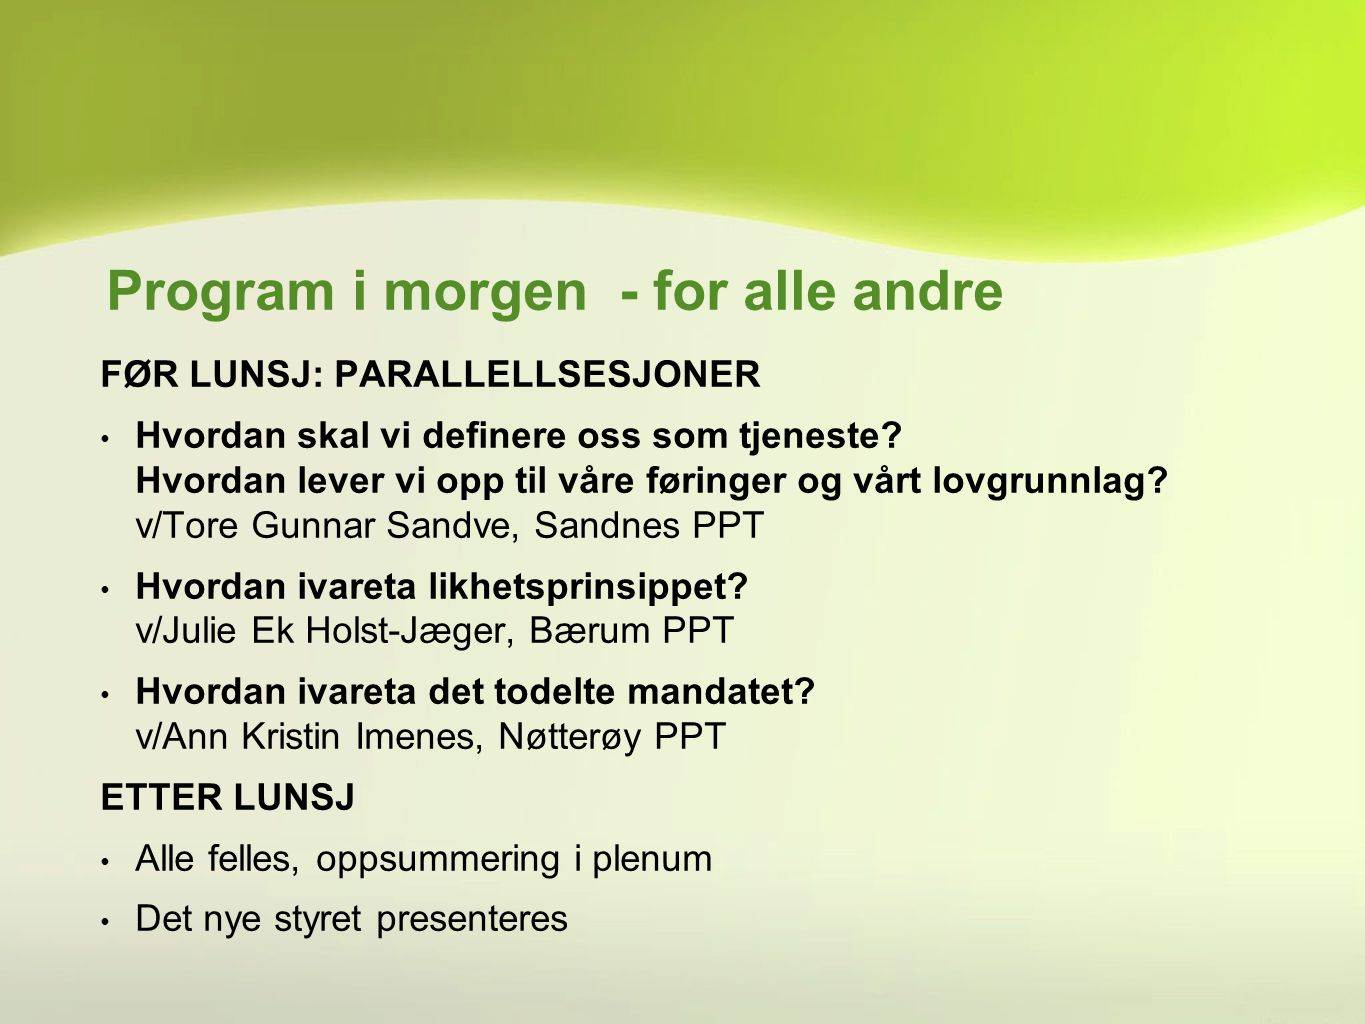 Program i morgen - for alle andre